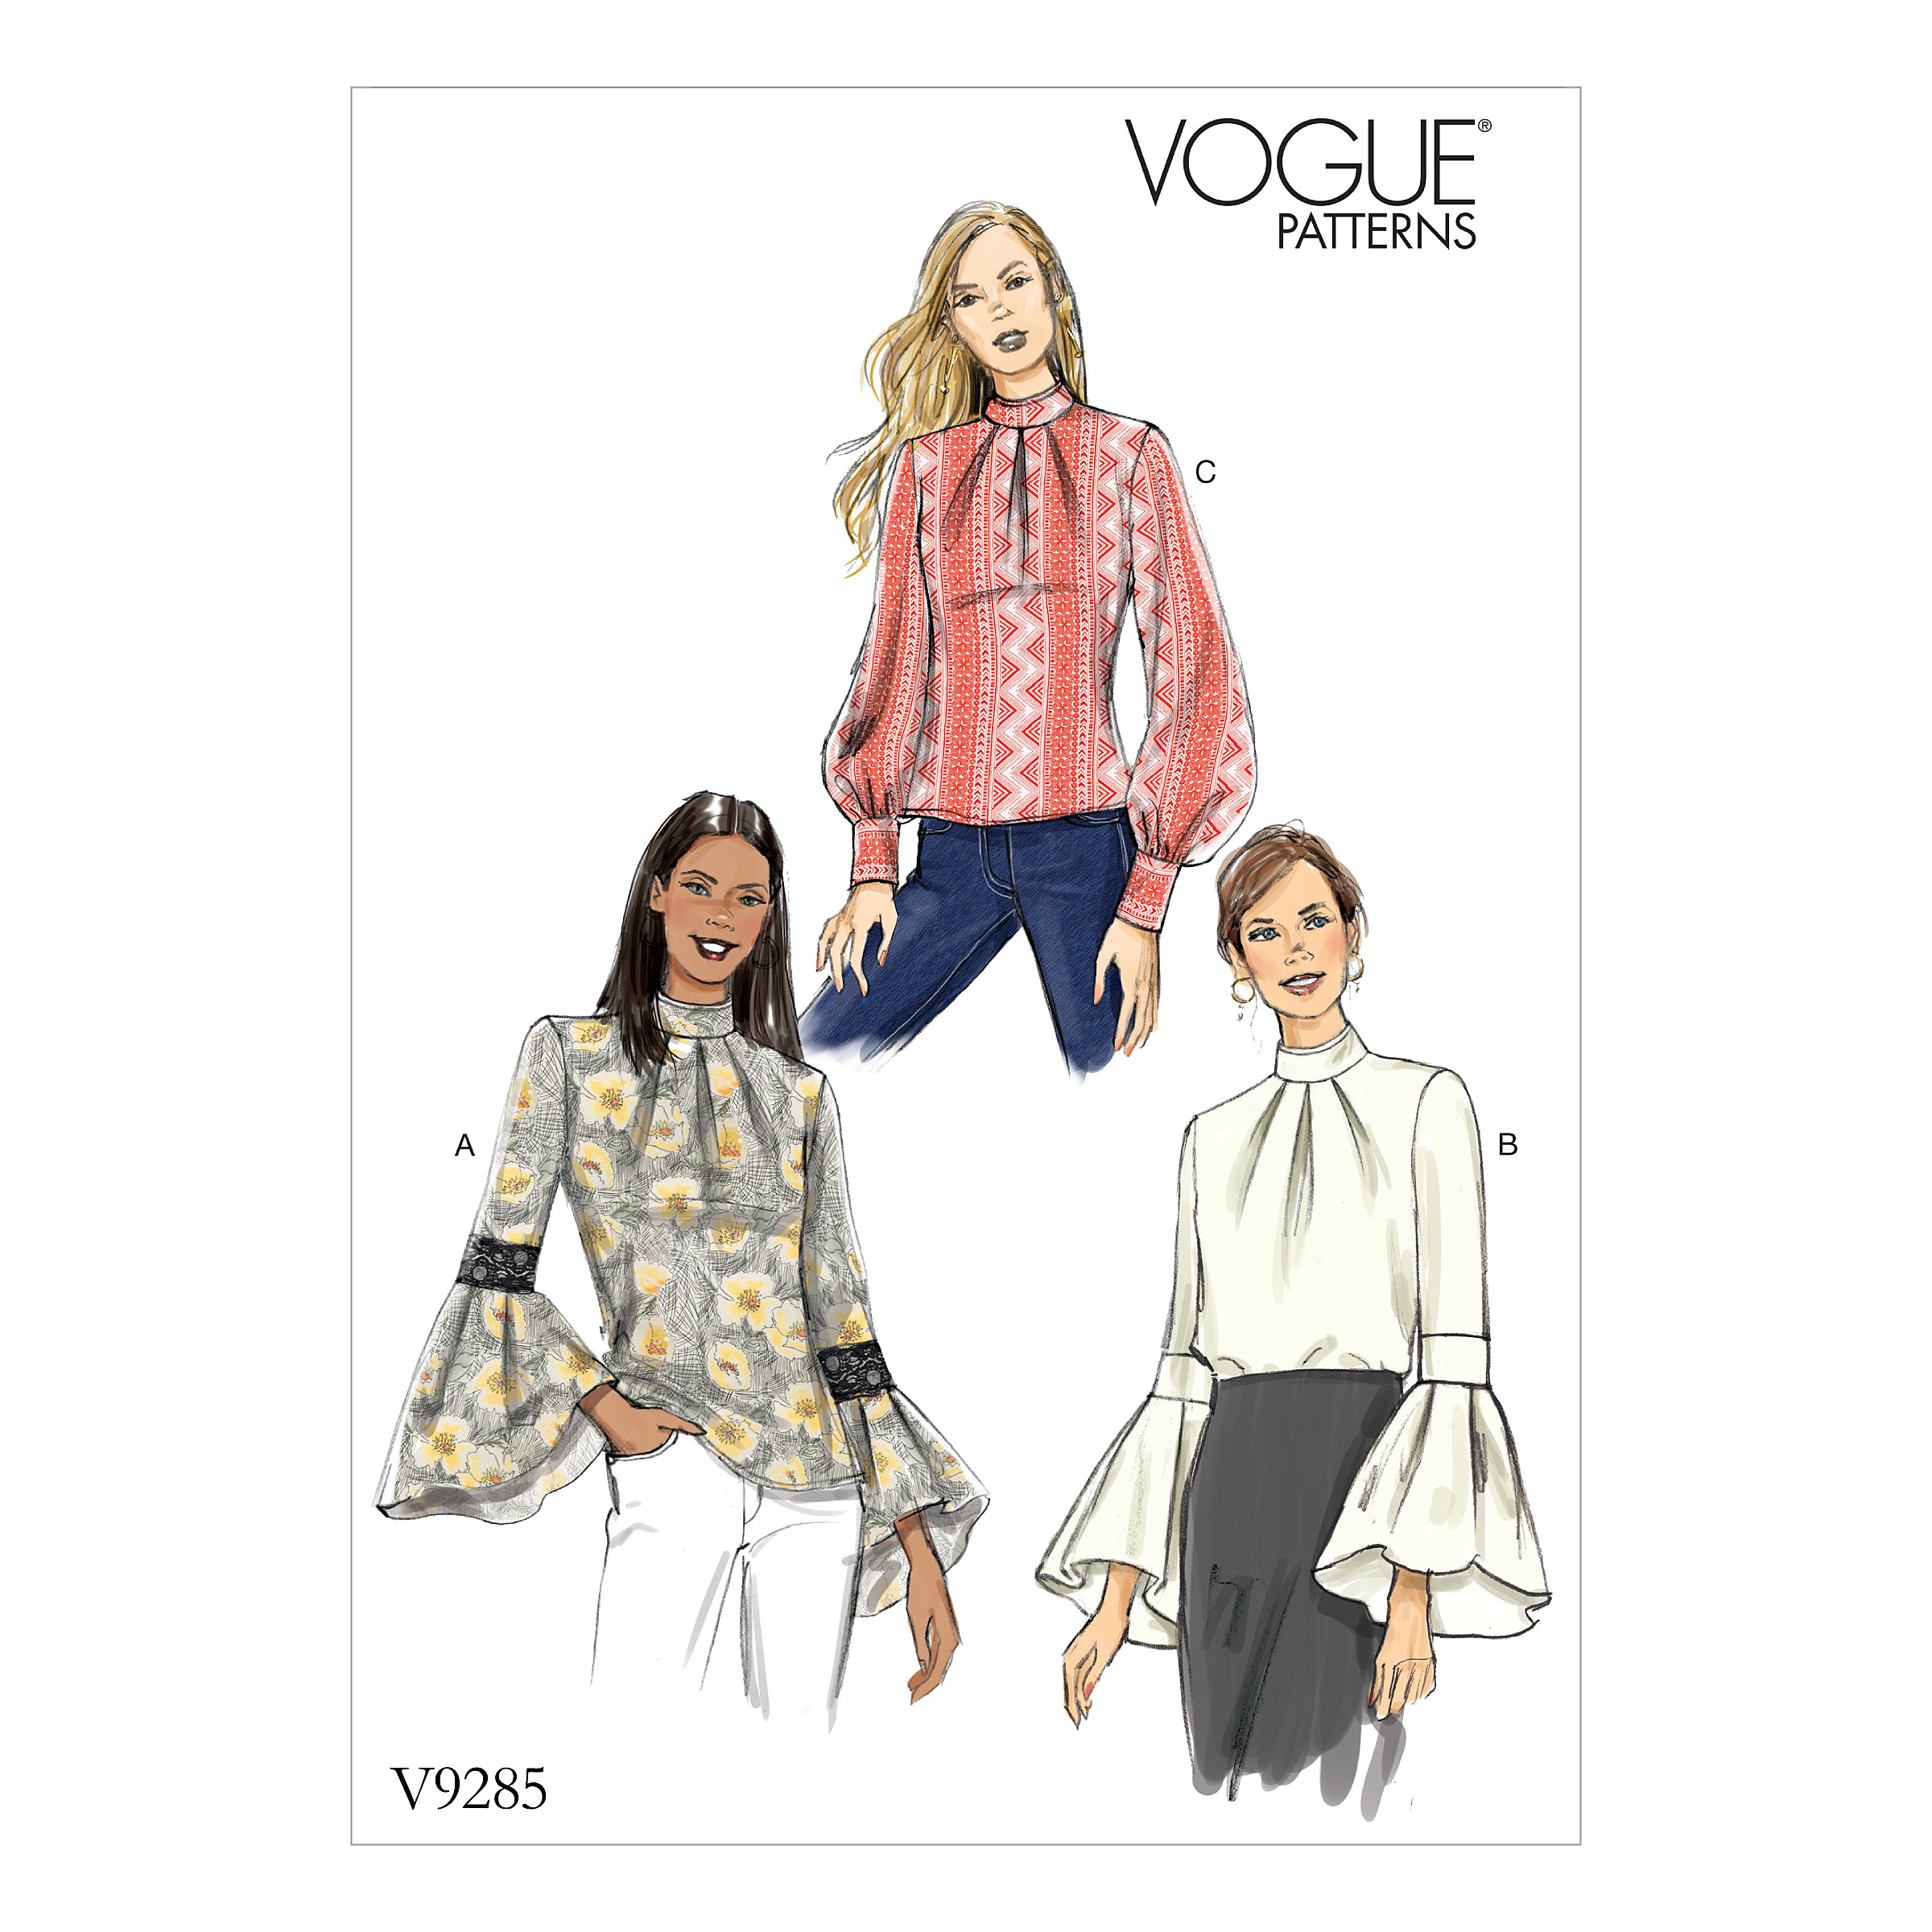 Vogue Patterns Sewing Pattern Misses' Top with Sleeve and Cuff Variations-14-16-18-20-22